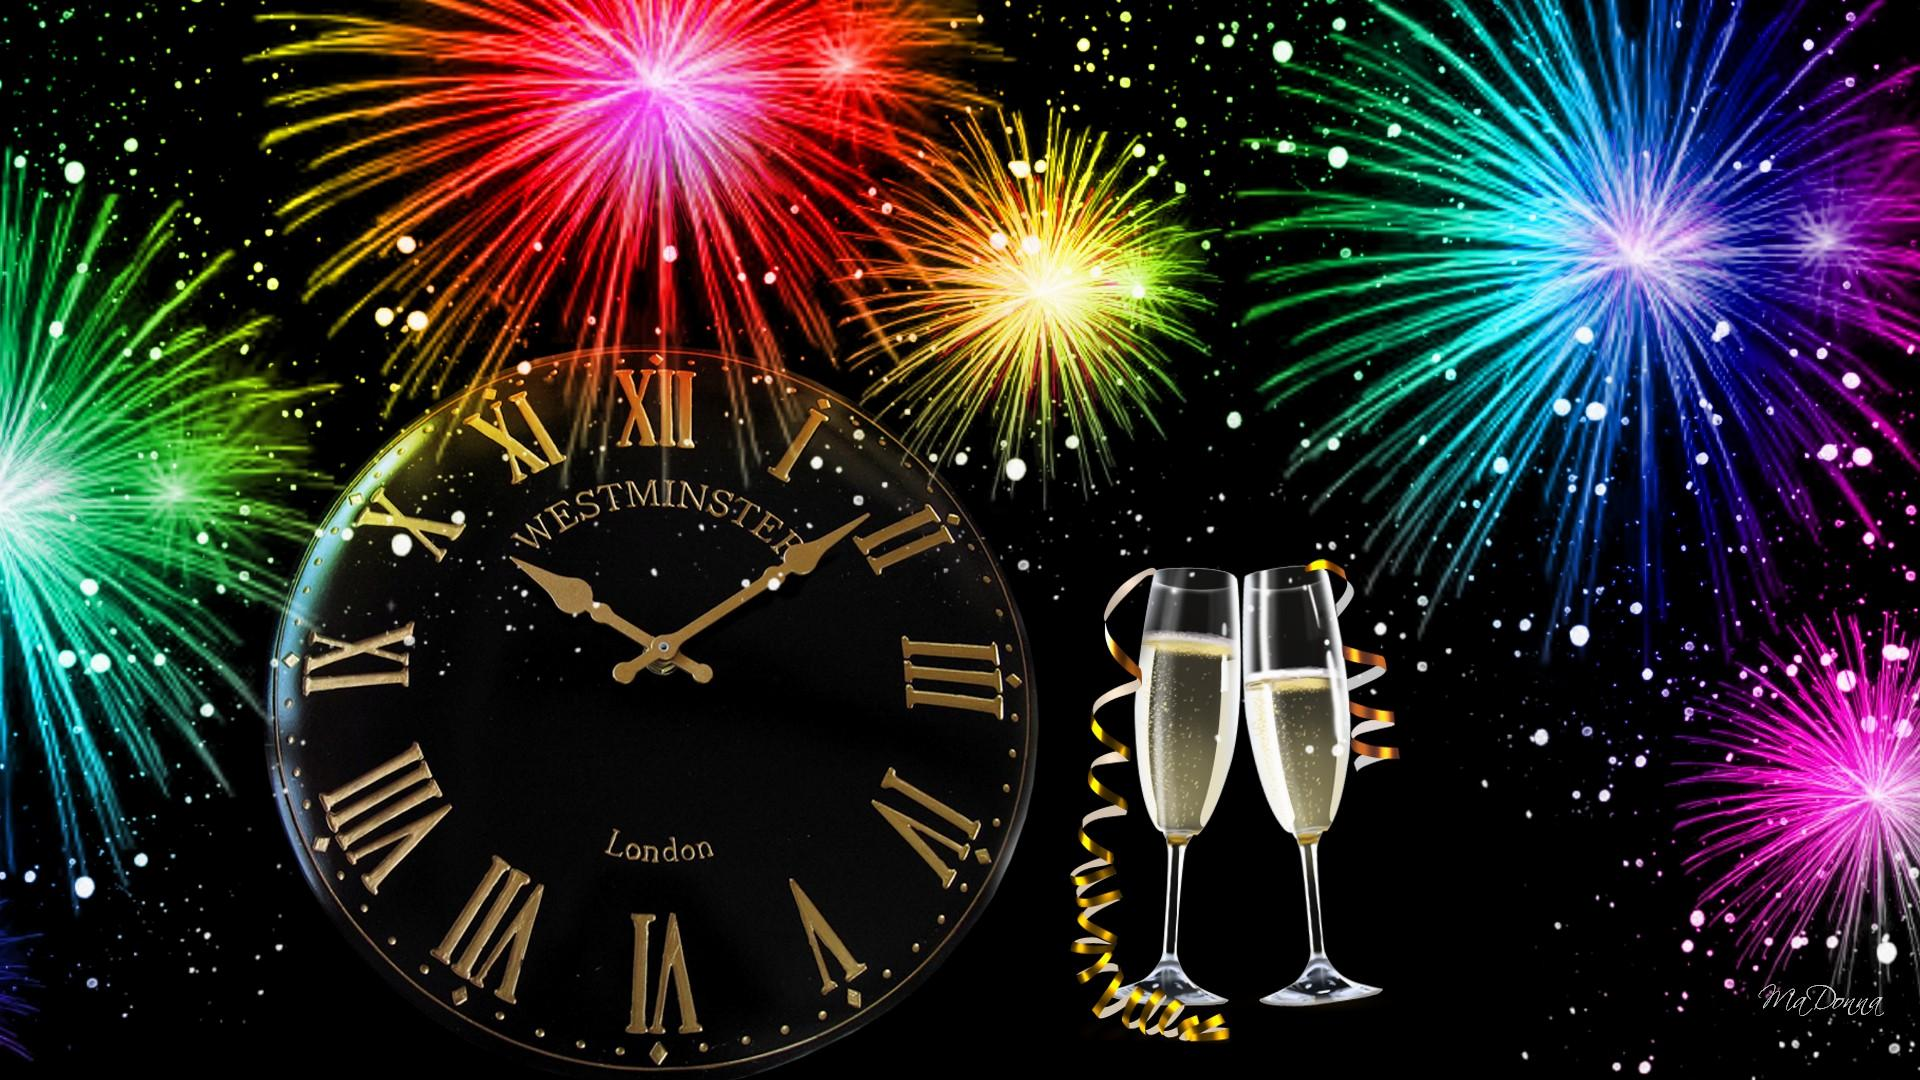 New Year Eve Wallpapers 2014 (53 Wallpapers) - Adorable ...